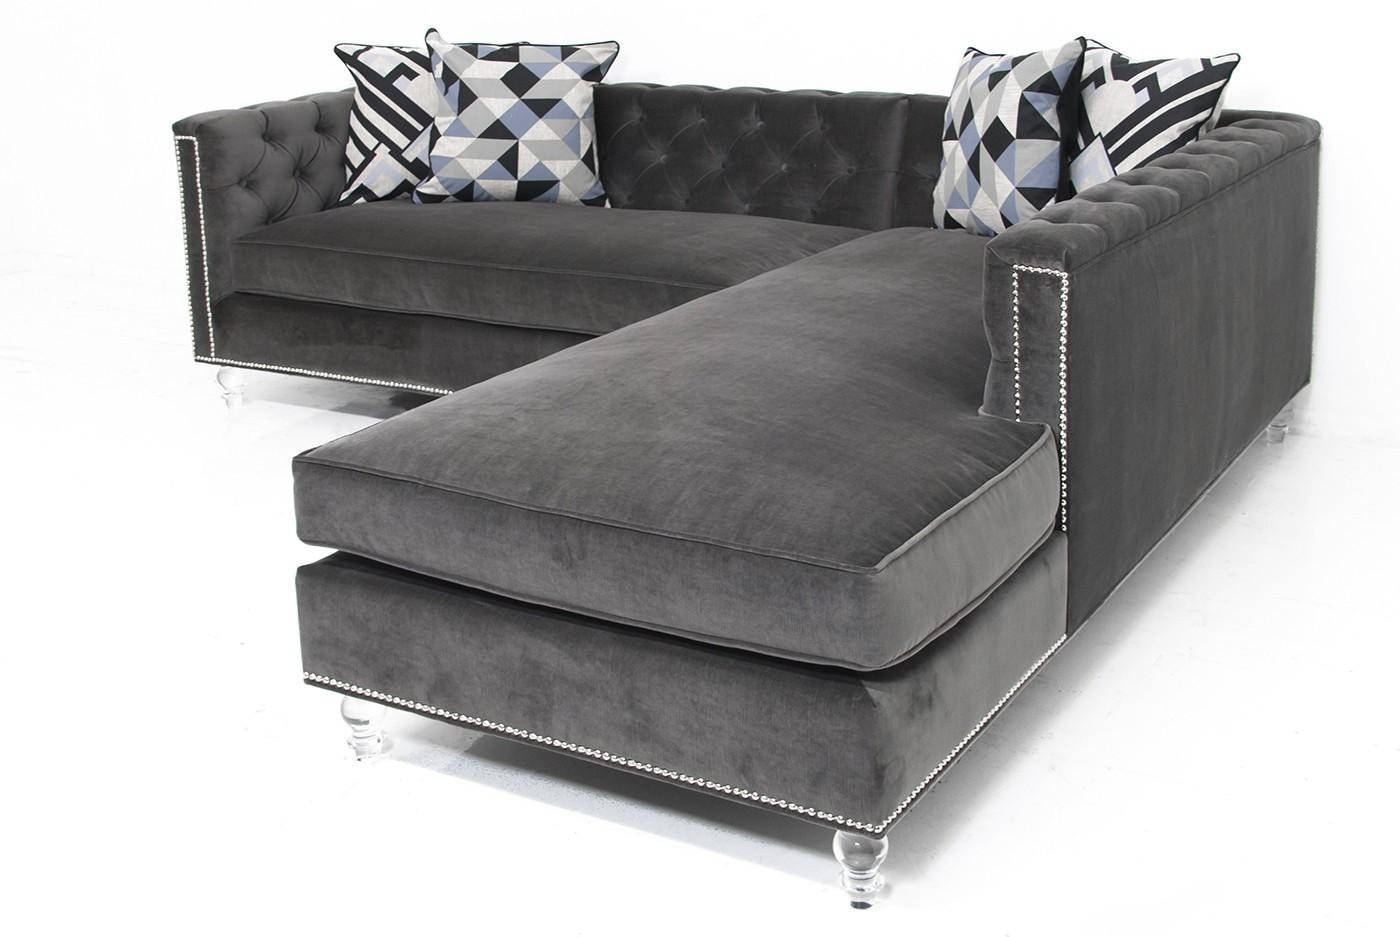 Velvet Tufted Sectional Sofa | Tehranmix Decoration Within Tufted Sectional Sofa Chaise (Image 20 of 20)